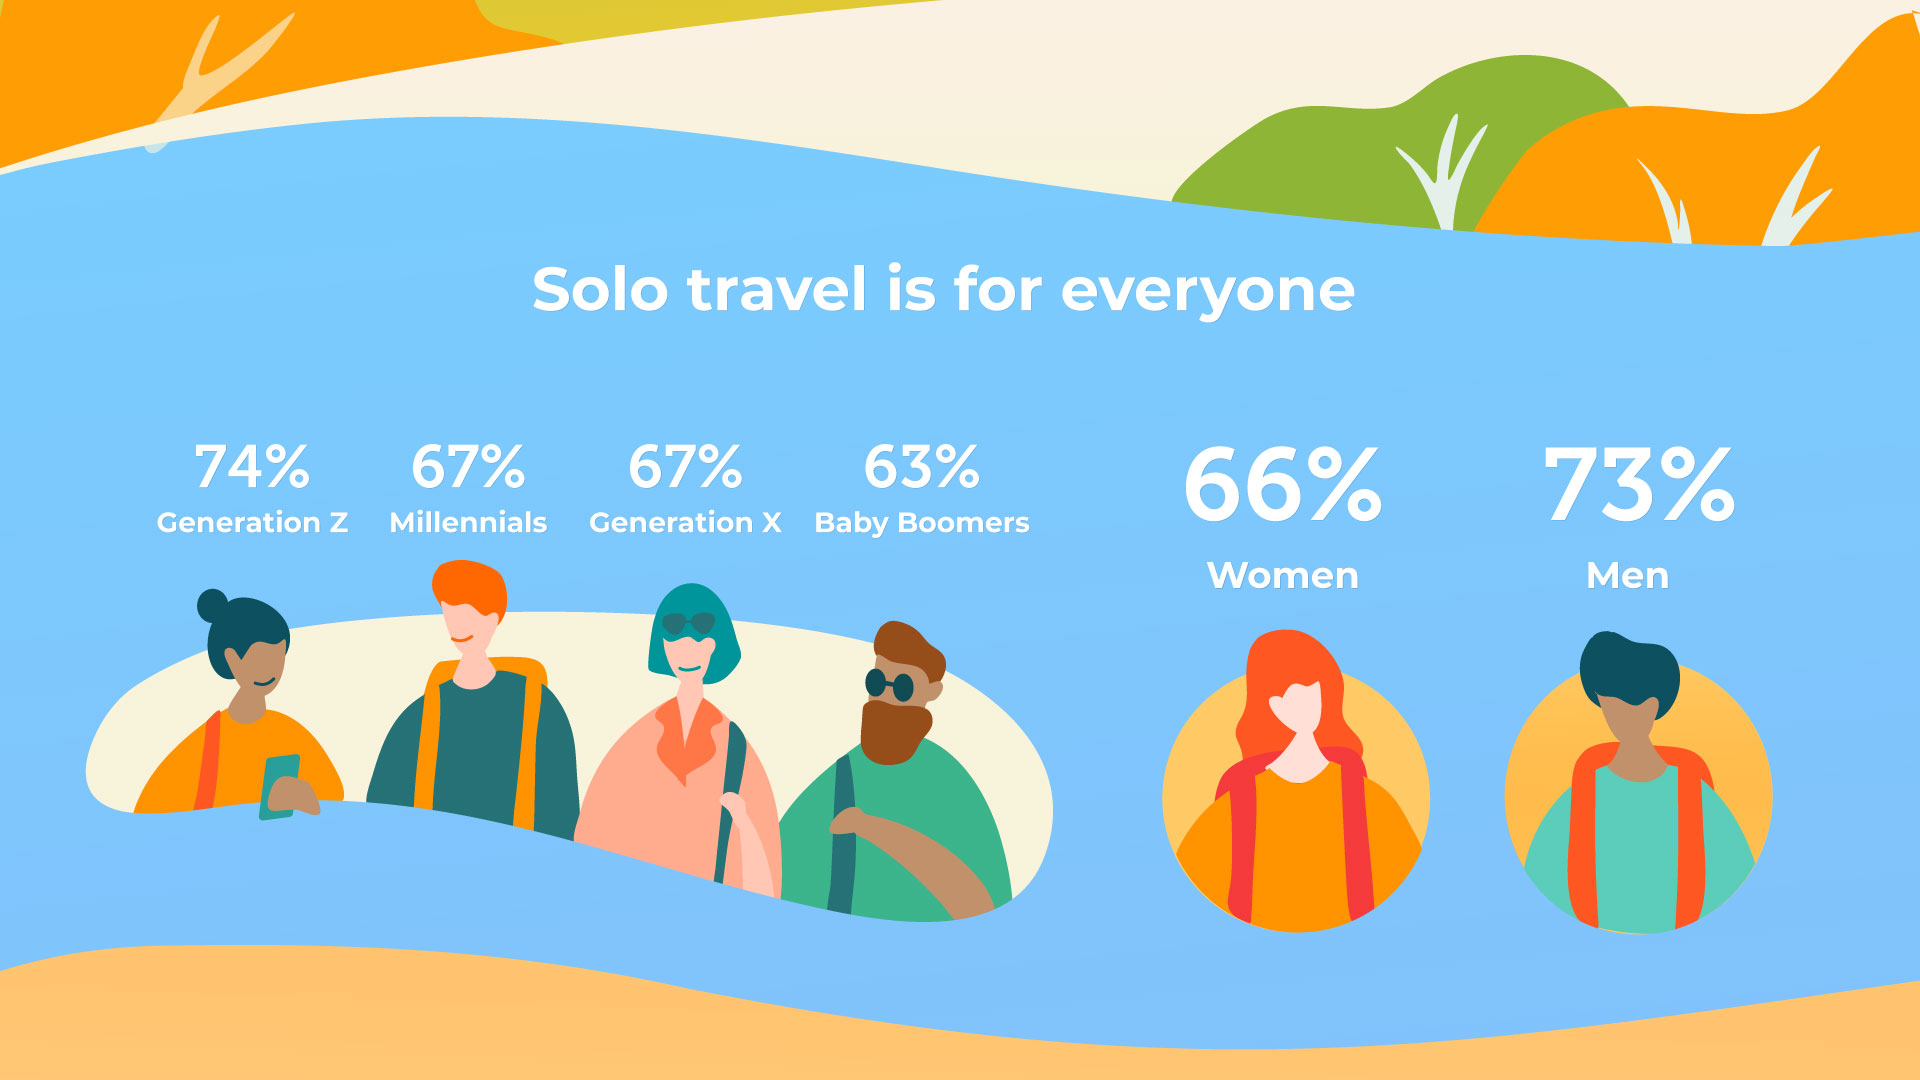 Klook's global solo traveller 2019 survey: Statistics on Malaysians' biggest hurdles when it comes to solo travel